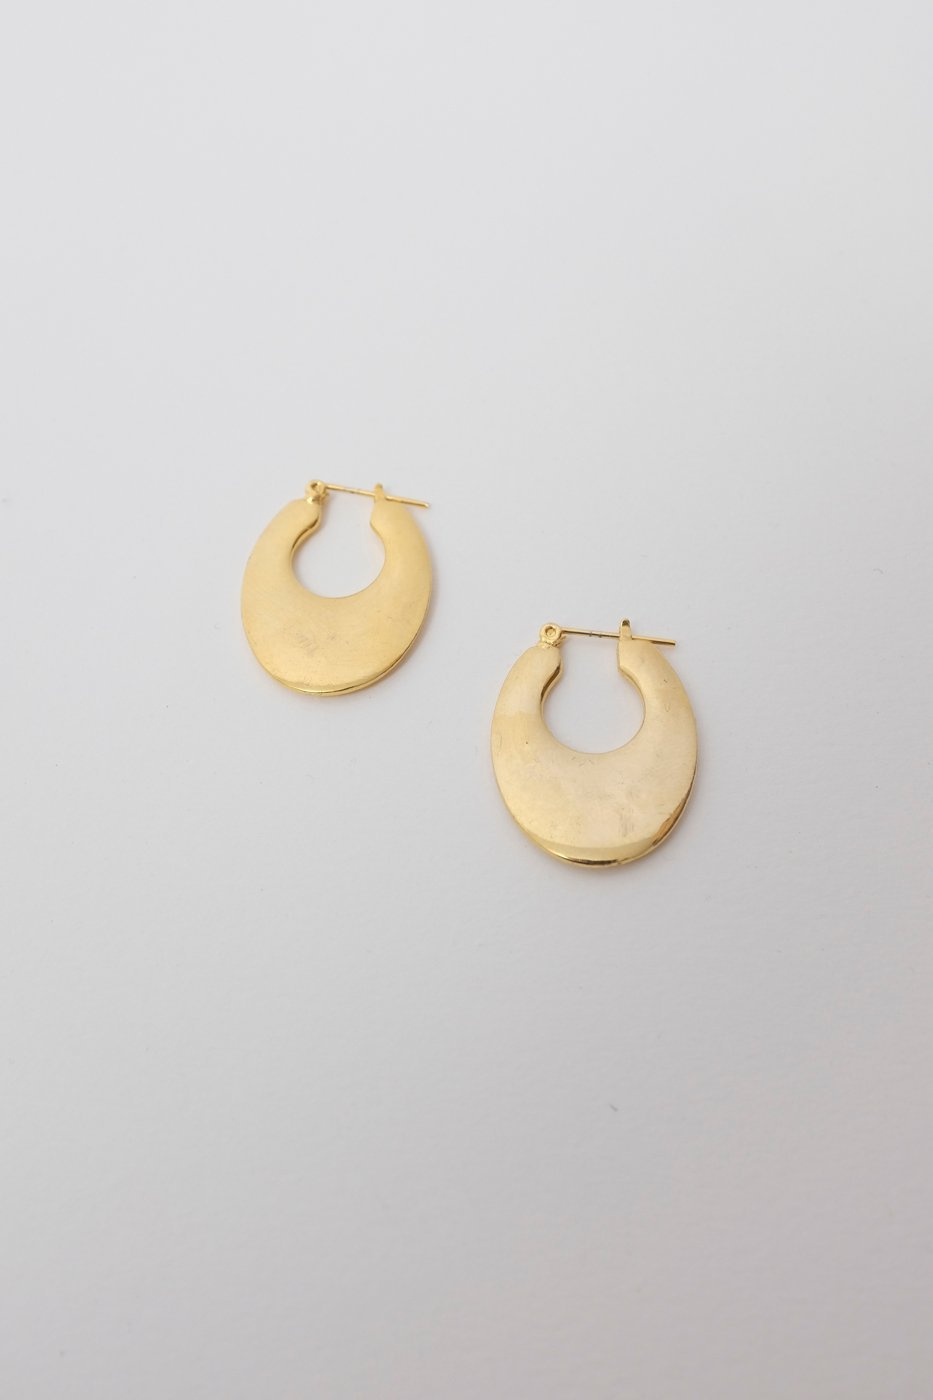 0340_VINTAGE GOLD FLAT CREOLEN EARRINGS